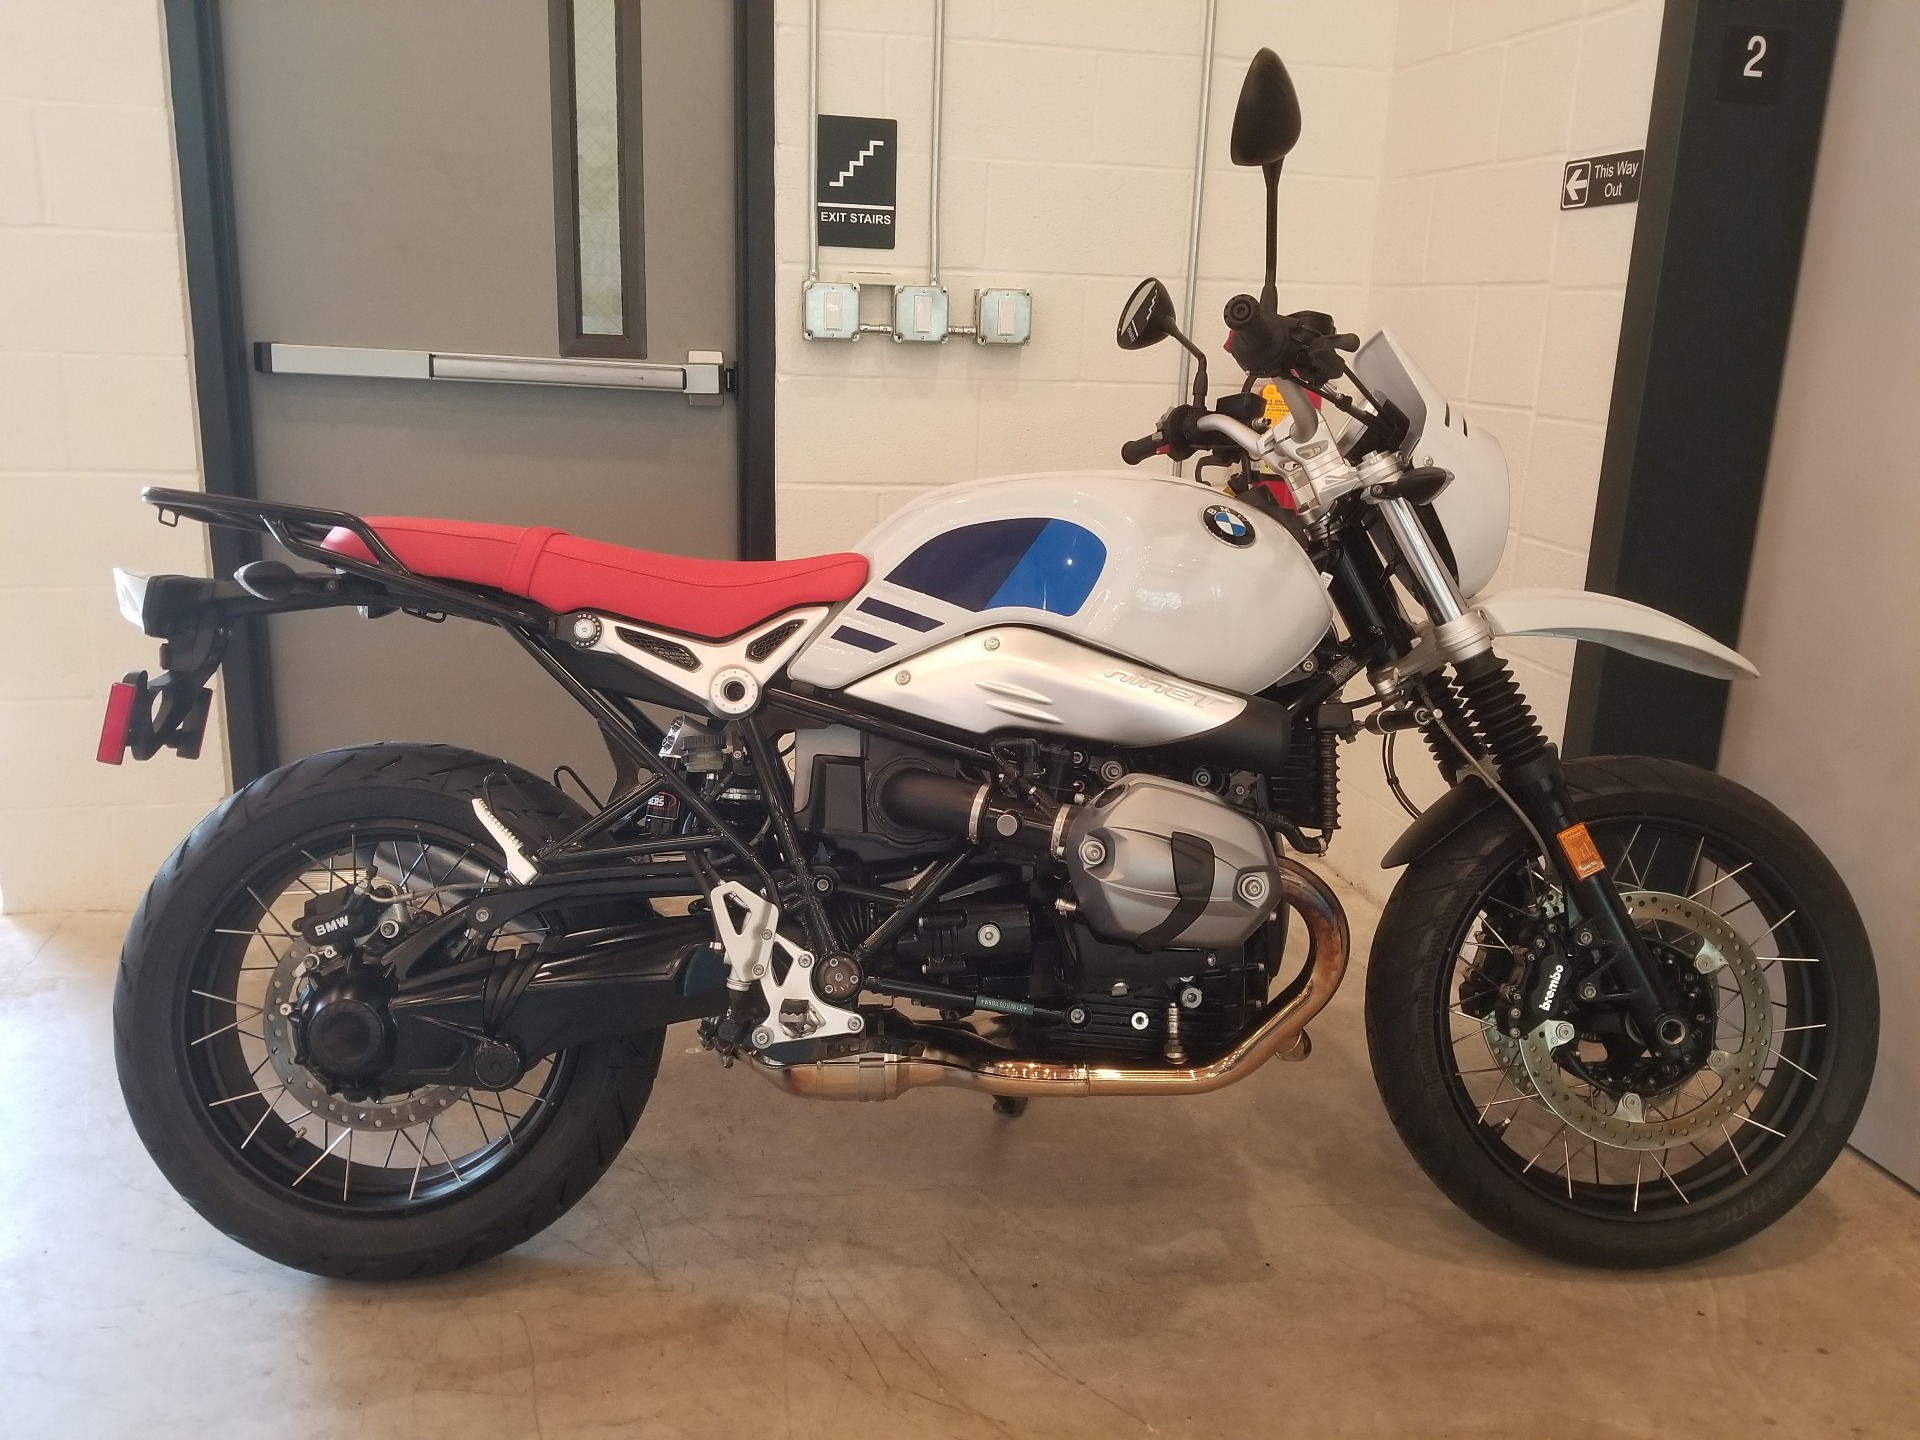 2018 BMW R nineT Urban G/S in Port Clinton, Pennsylvania - Photo 1